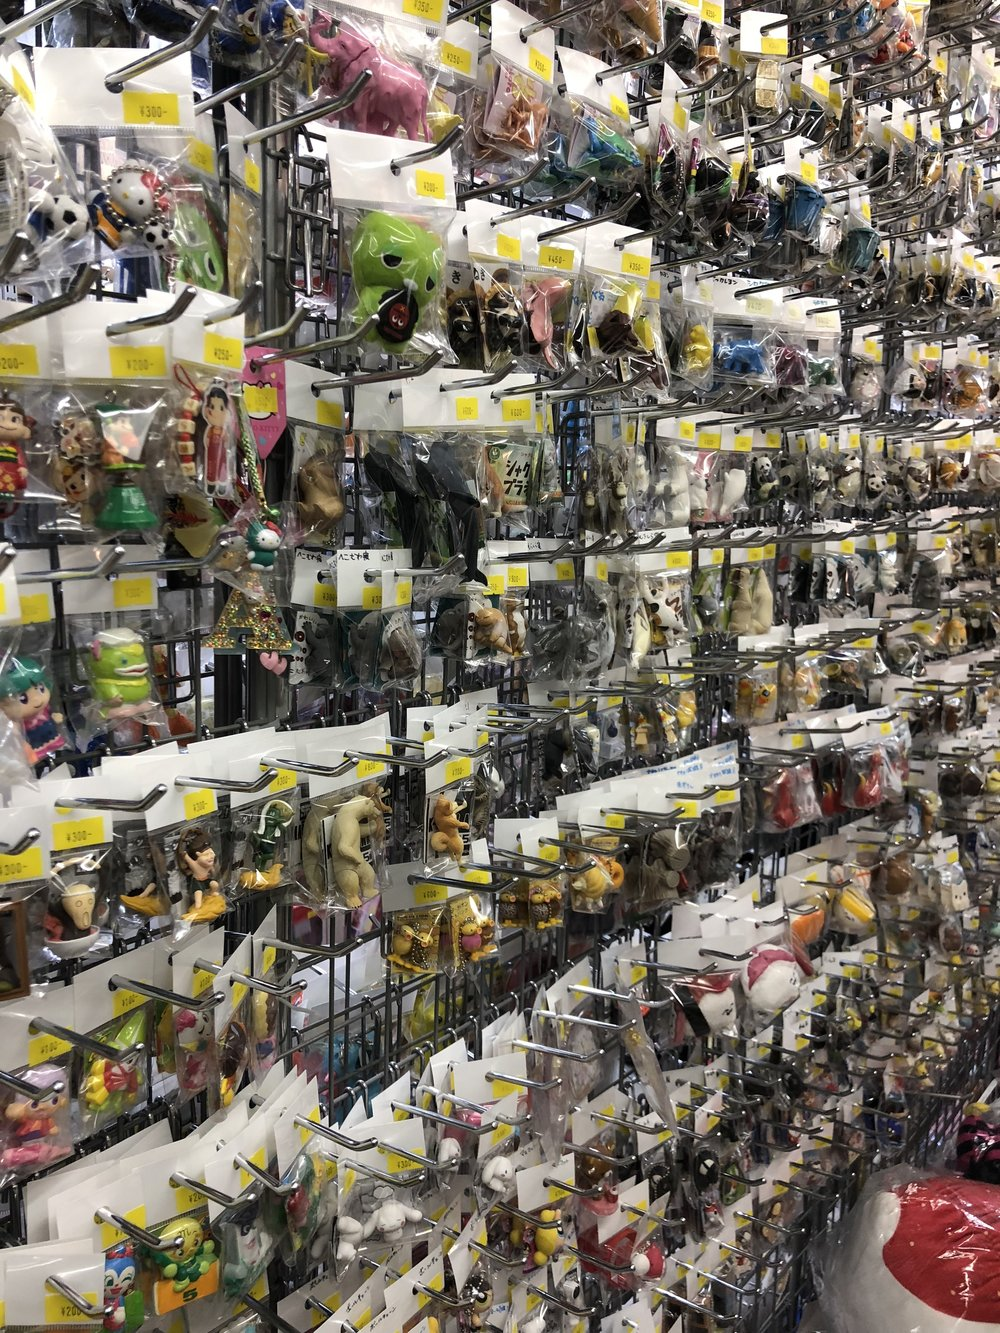 Thousands upon thousands of collectible small plastic toys at Nakano Broadway.